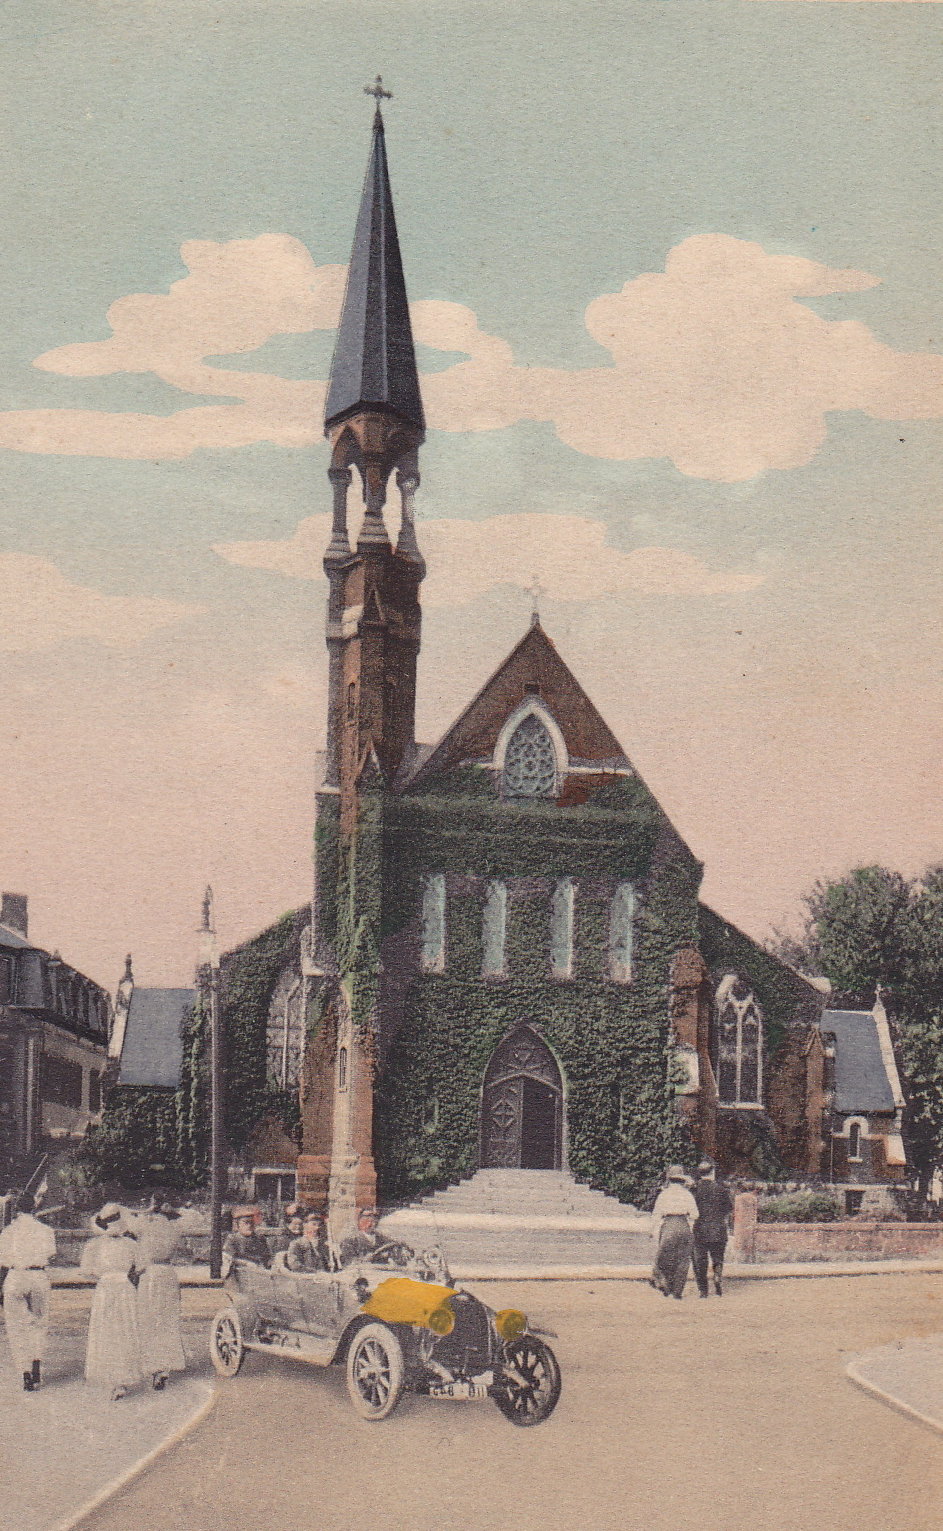 The original St. Thomas Aquinas Church designed by P.C. Keely. From a postcard, about 1915. Courtesy of the Archives of the Archdiocese of Boston.